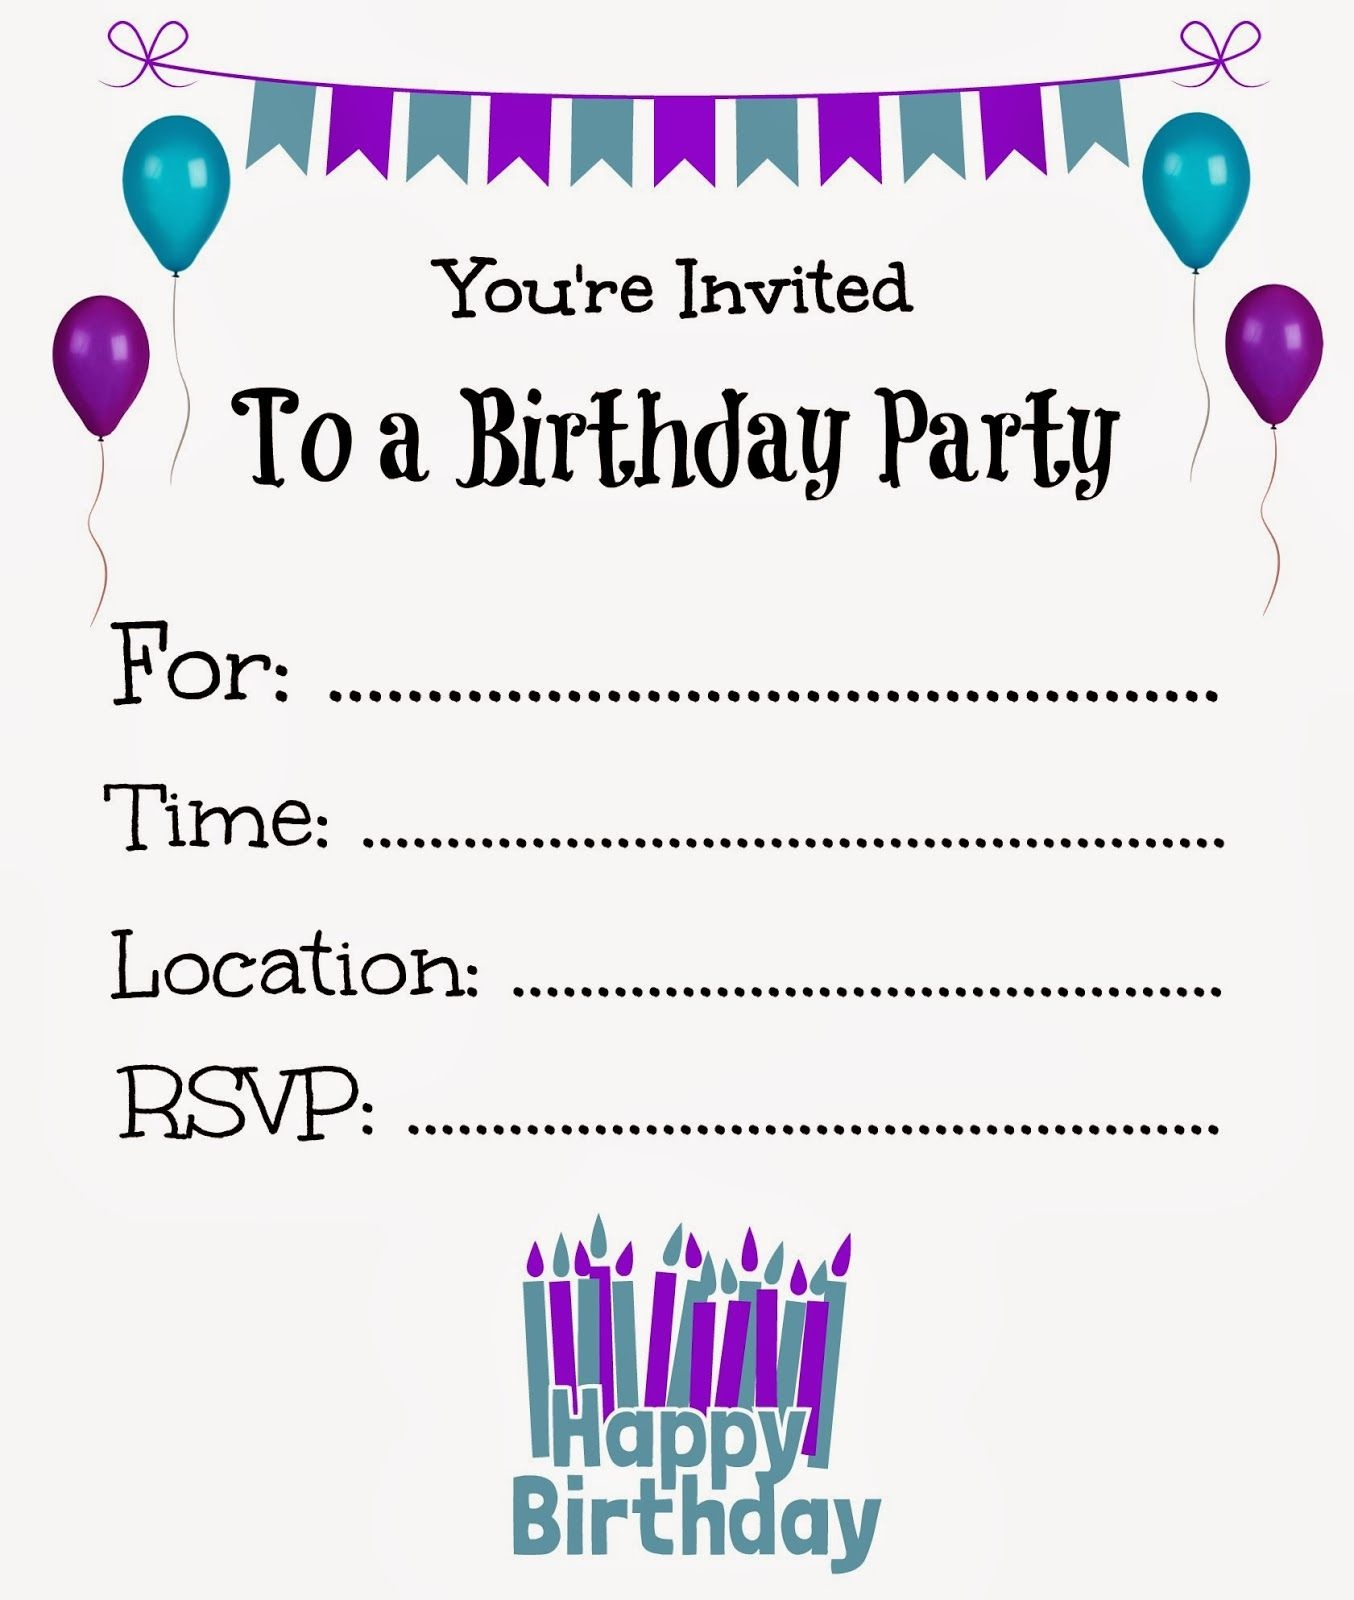 Free Printable Birthday Invitations For Kids #freeprintables - Happy Birthday Invitations Free Printable